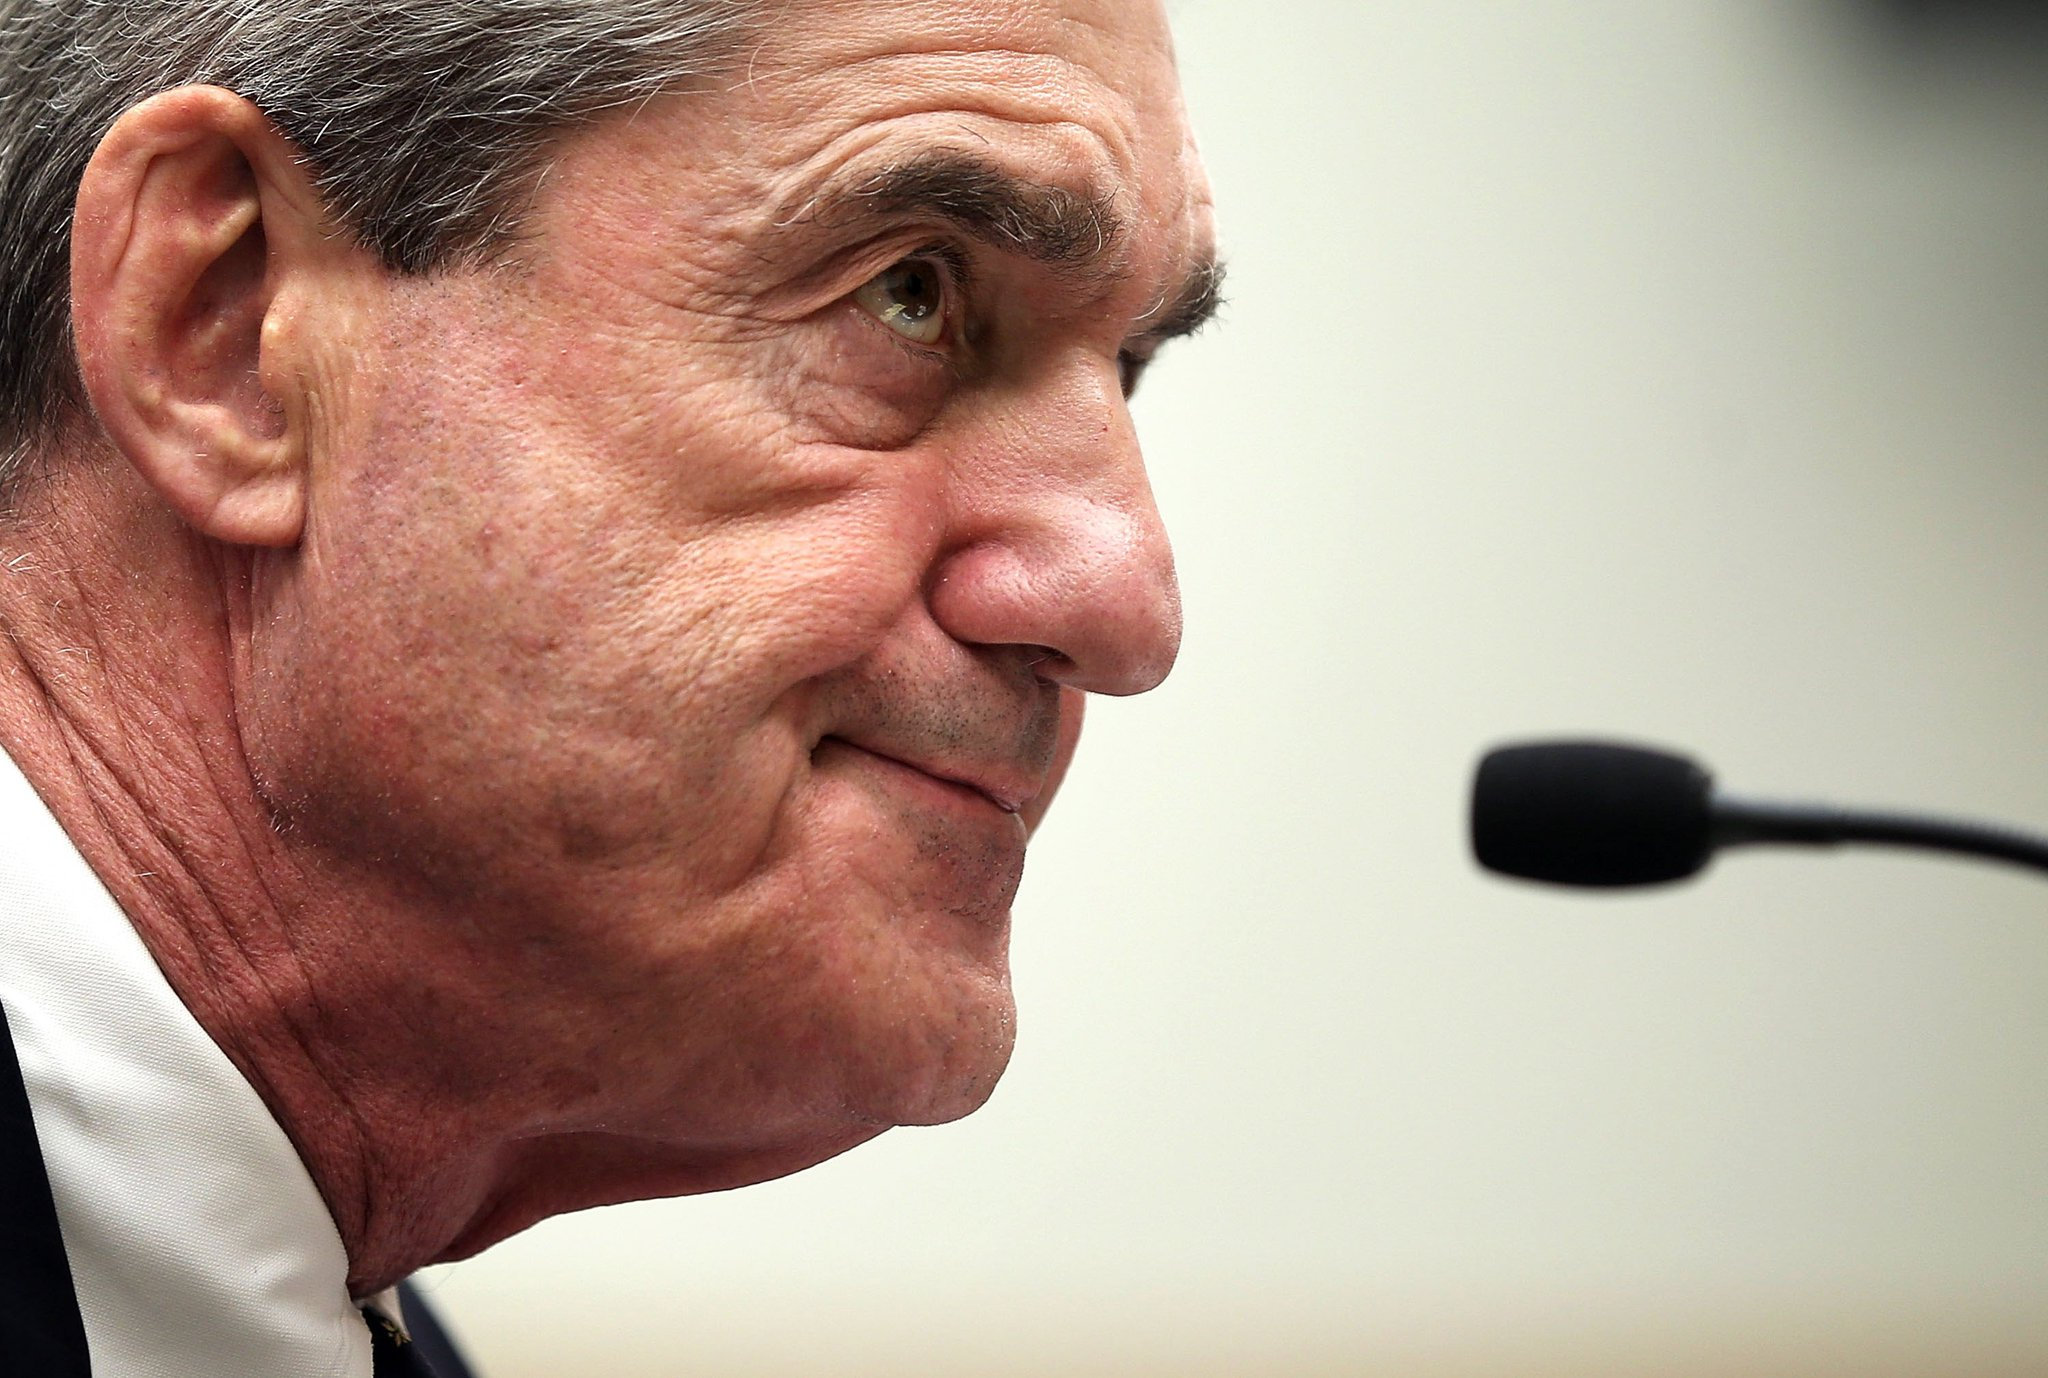 Russia is trying to undermine Mueller investigation, former officials say https://t.co/VMRmTV8PZ6 https://t.co/hxZvmQYh9W